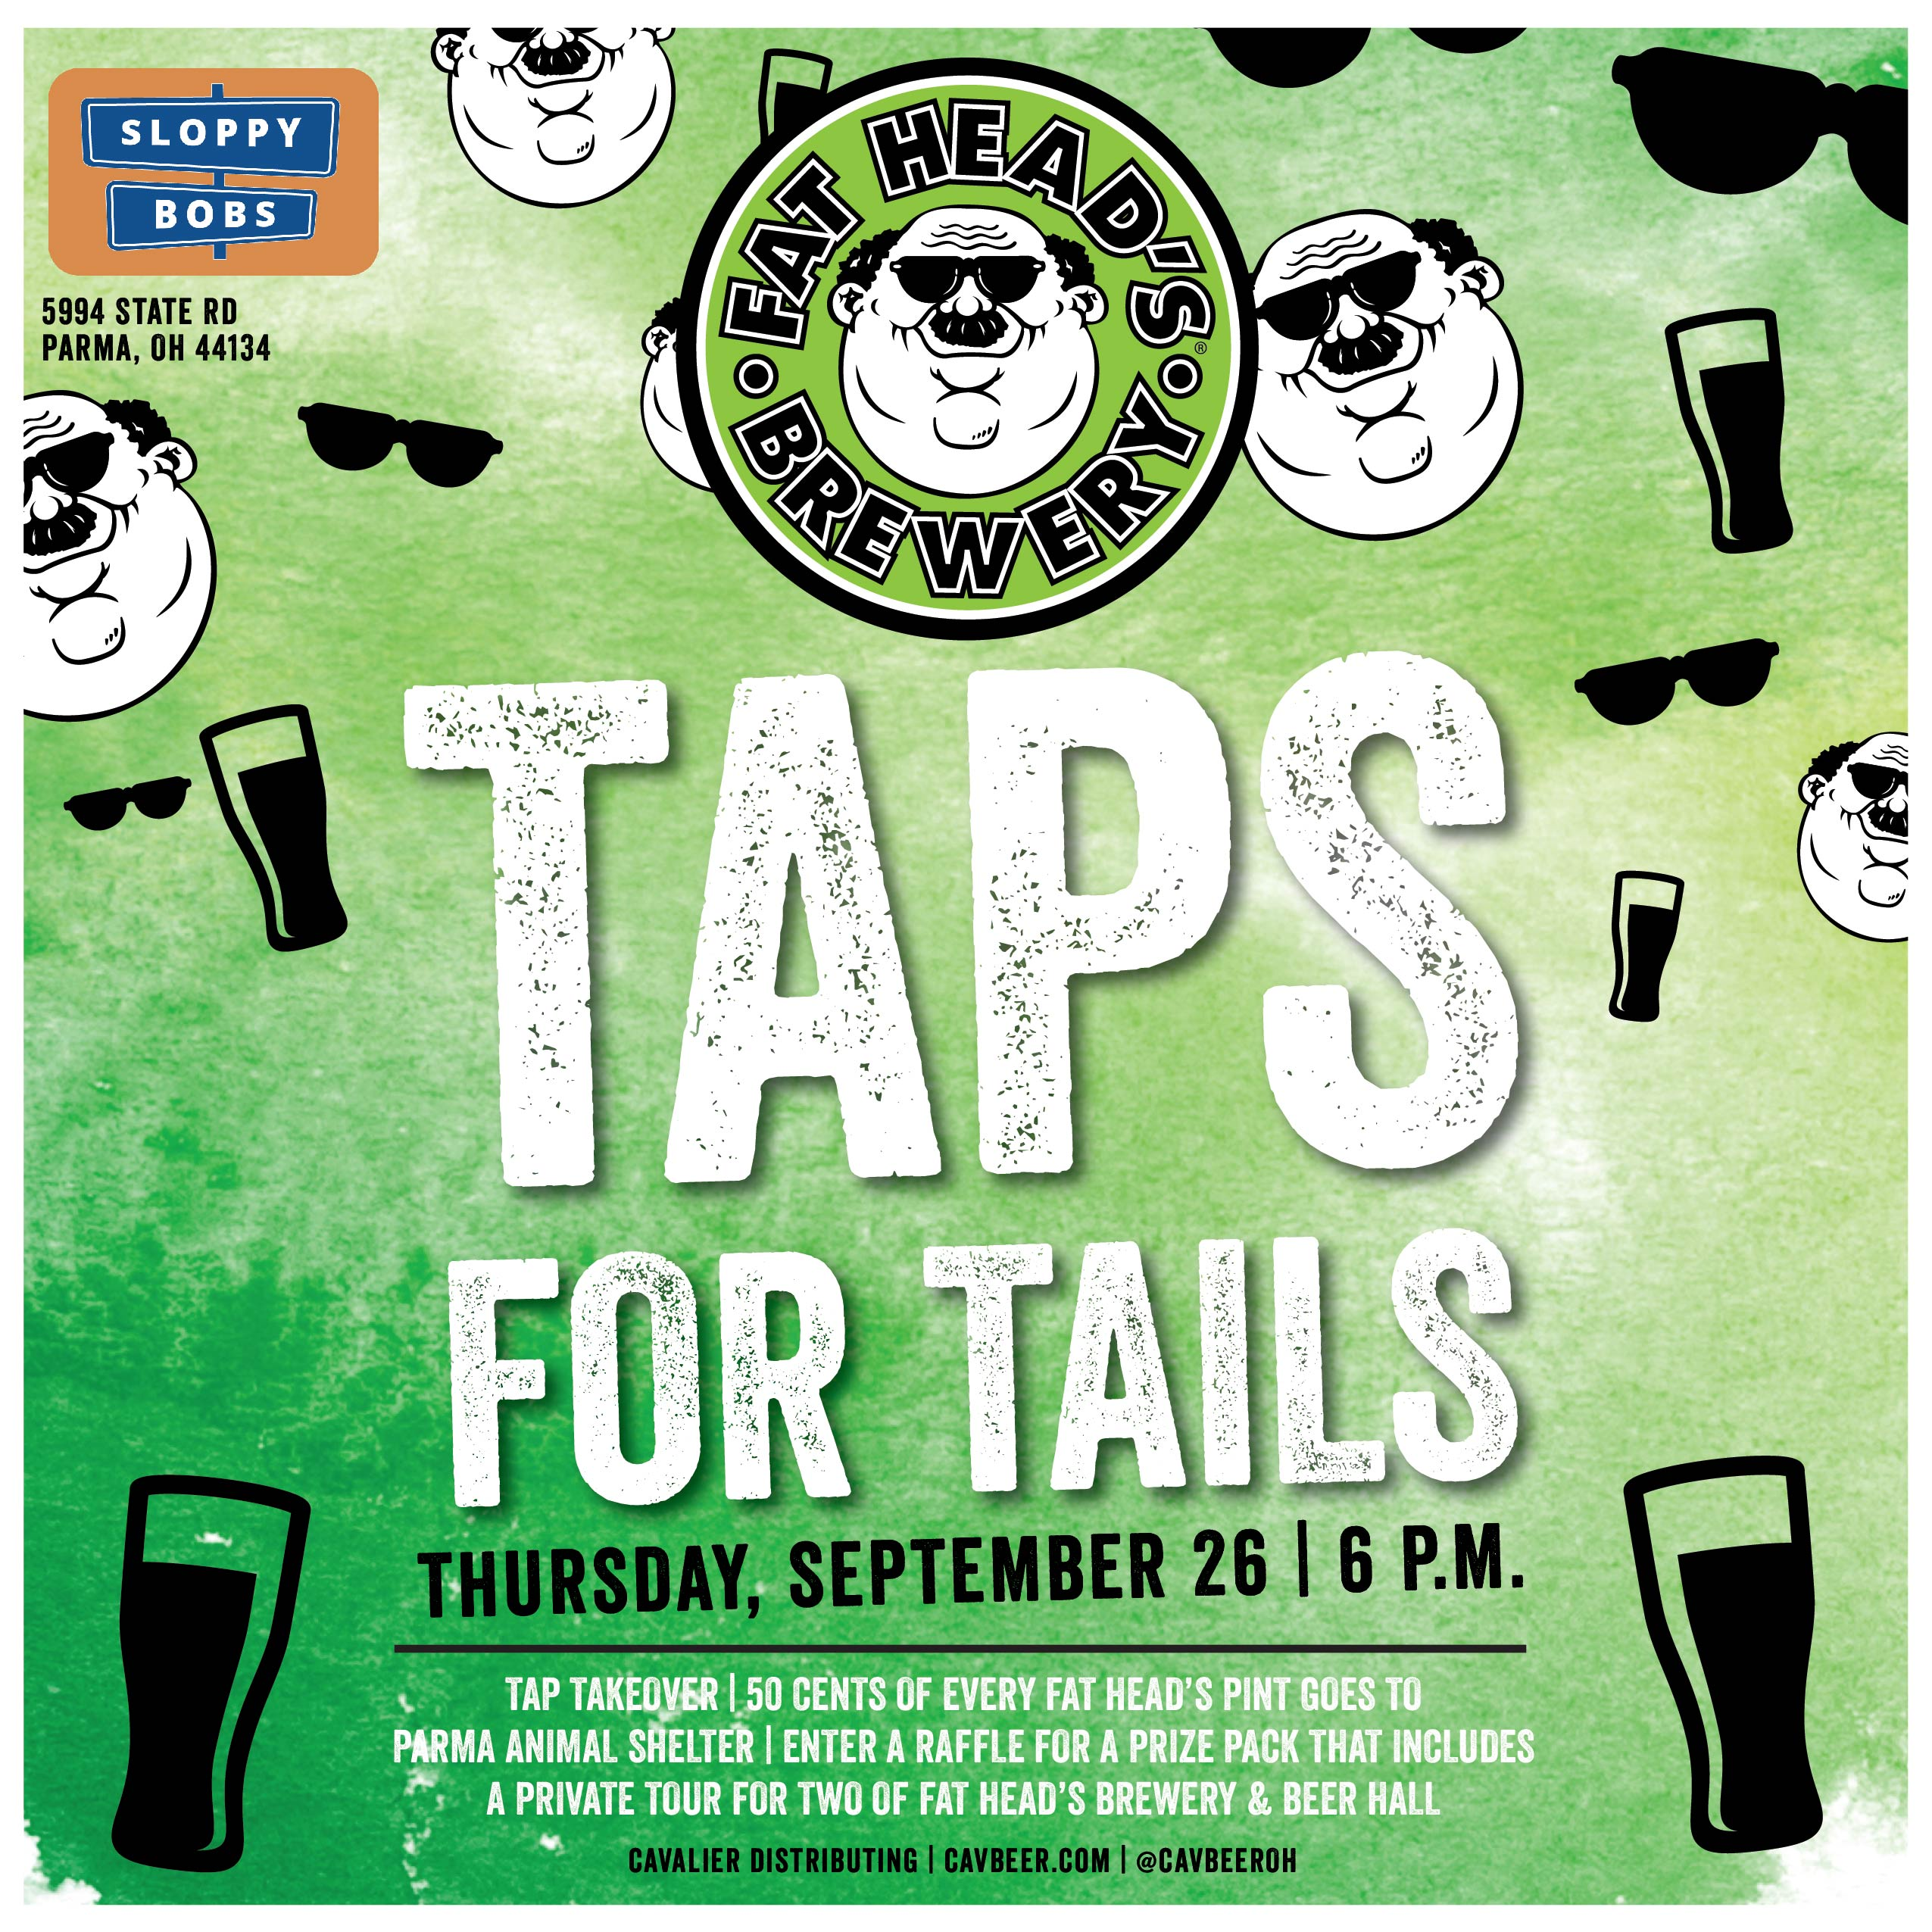 Taps For Tails @ Sloppy Bobs